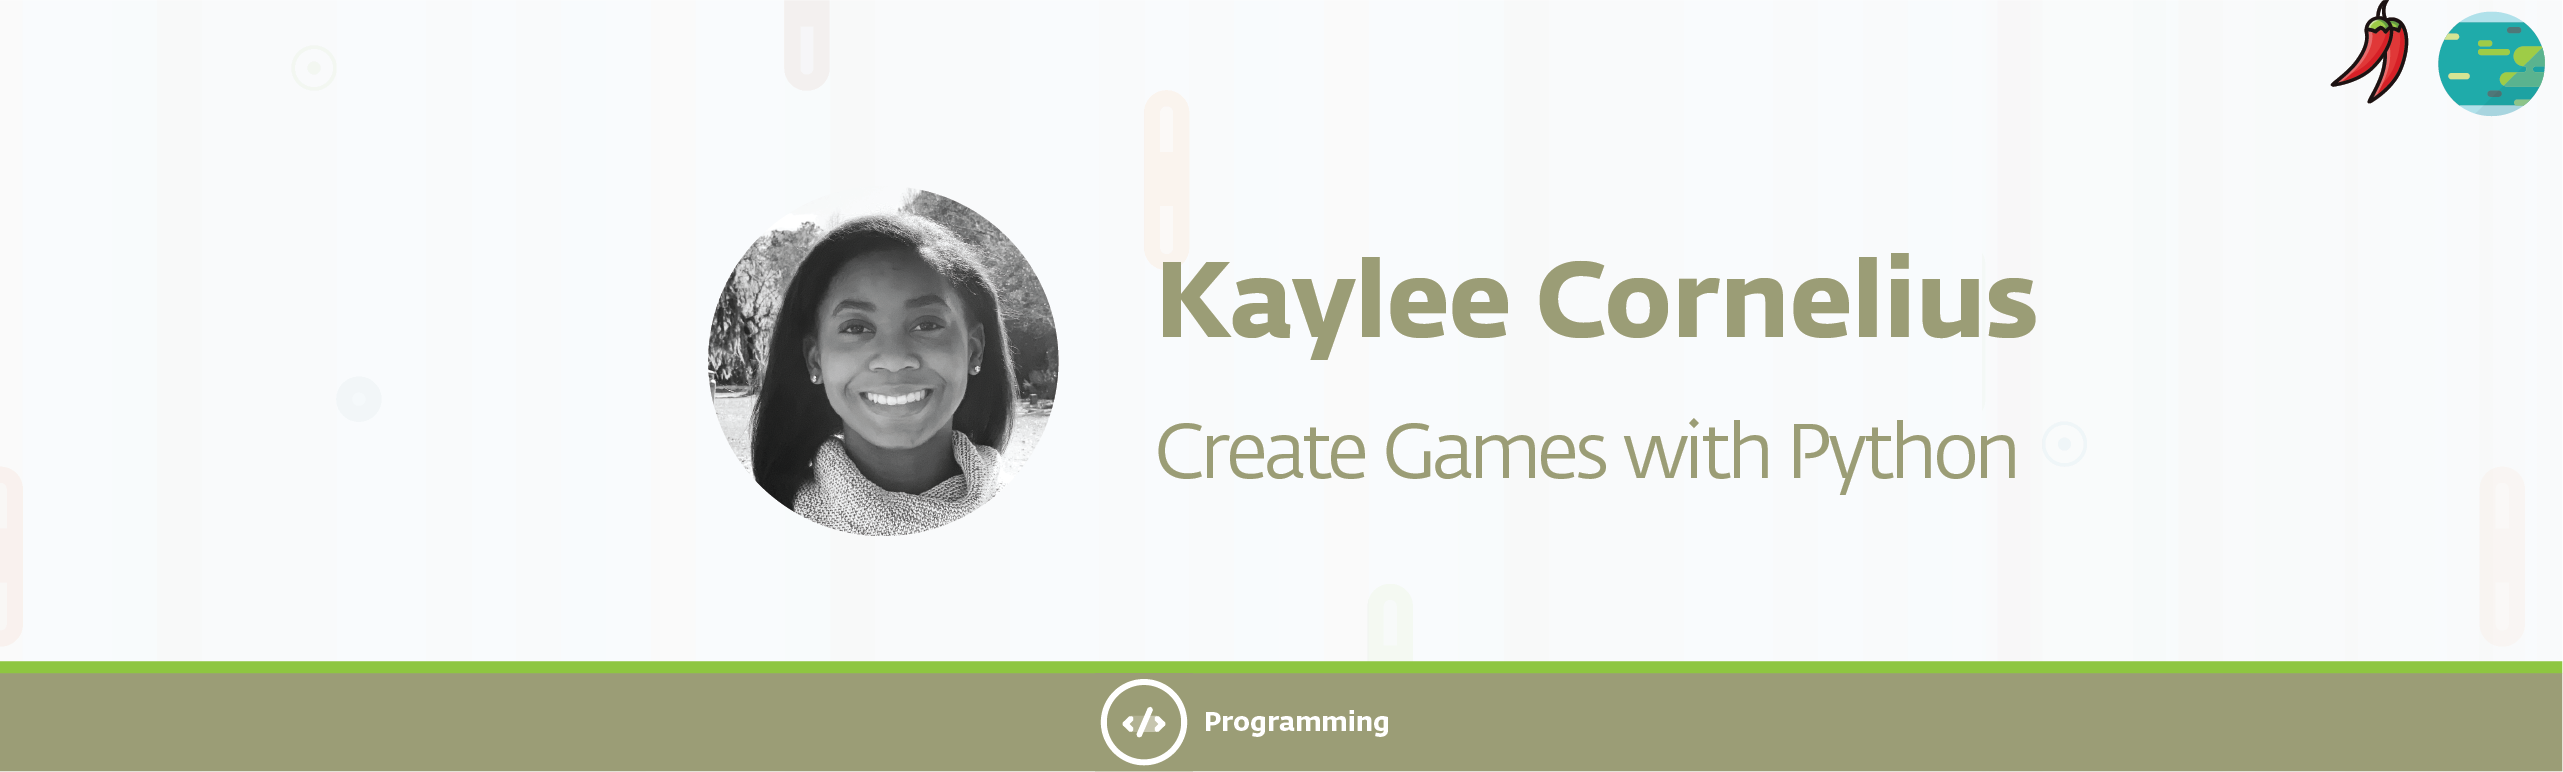 january 03 - Create Games with Python